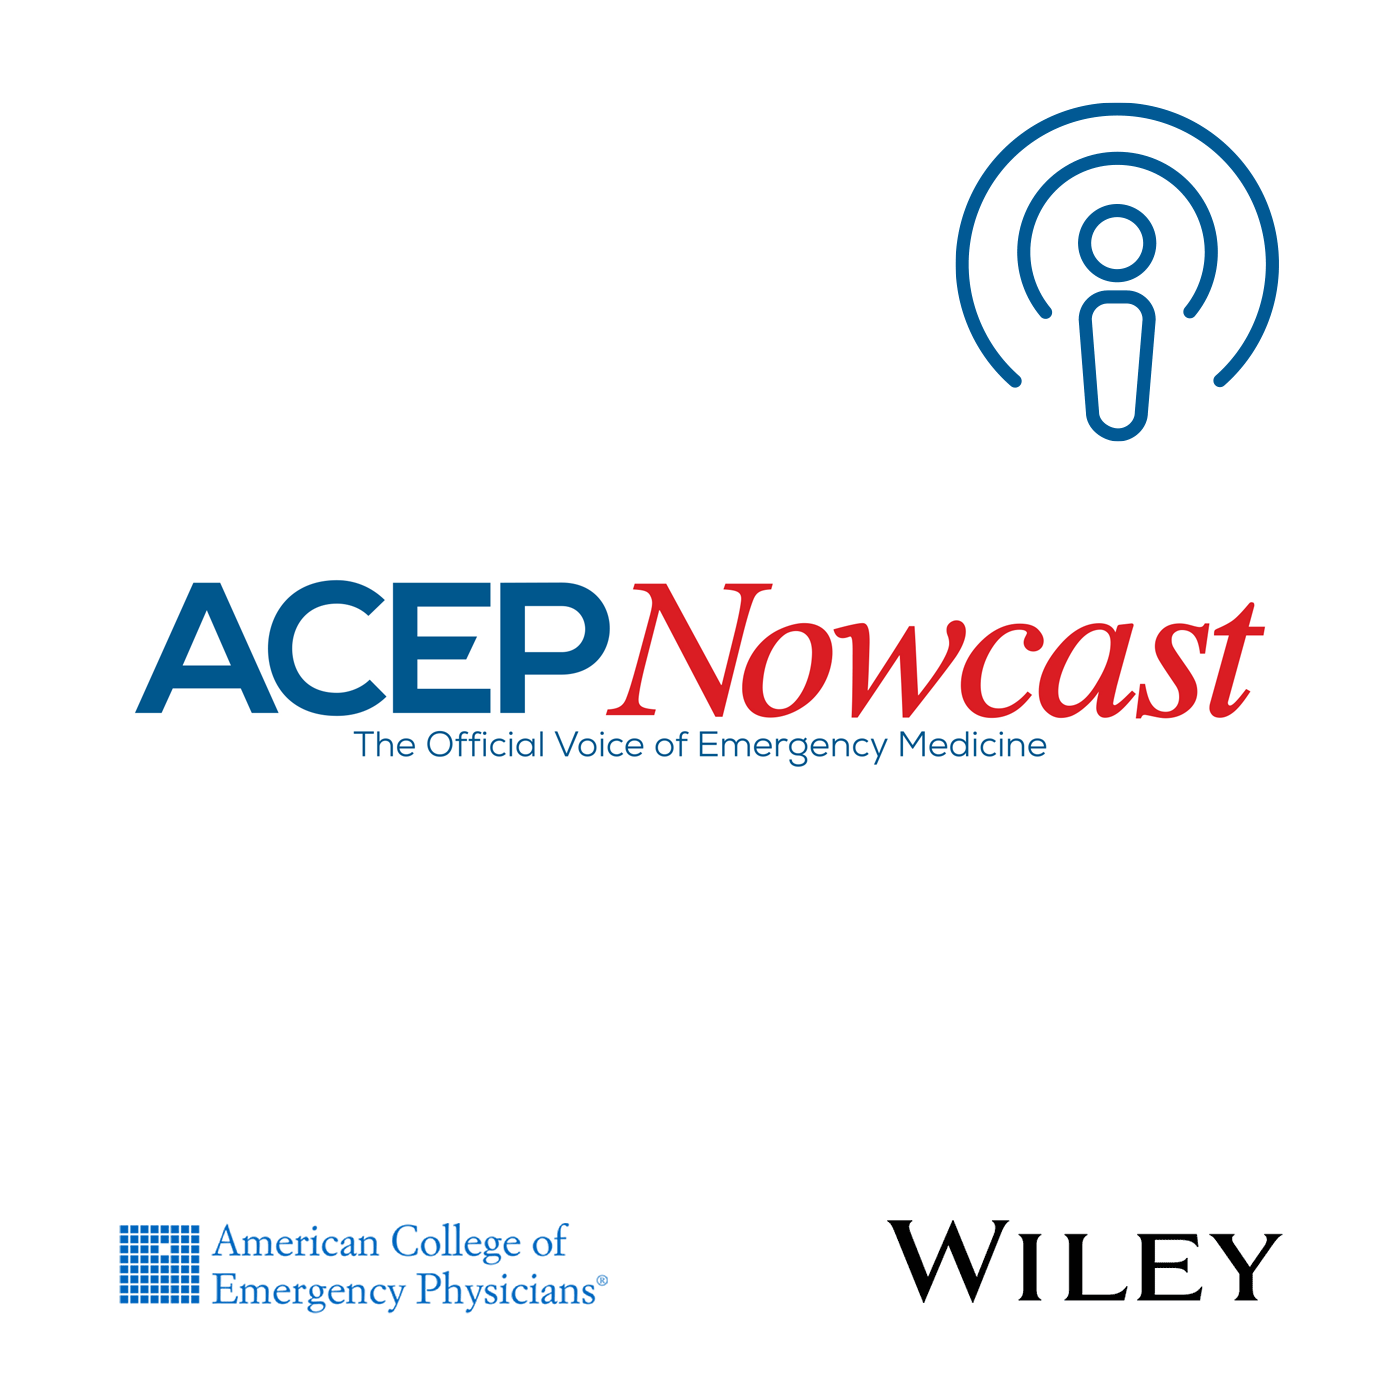 ACEP Nowcast